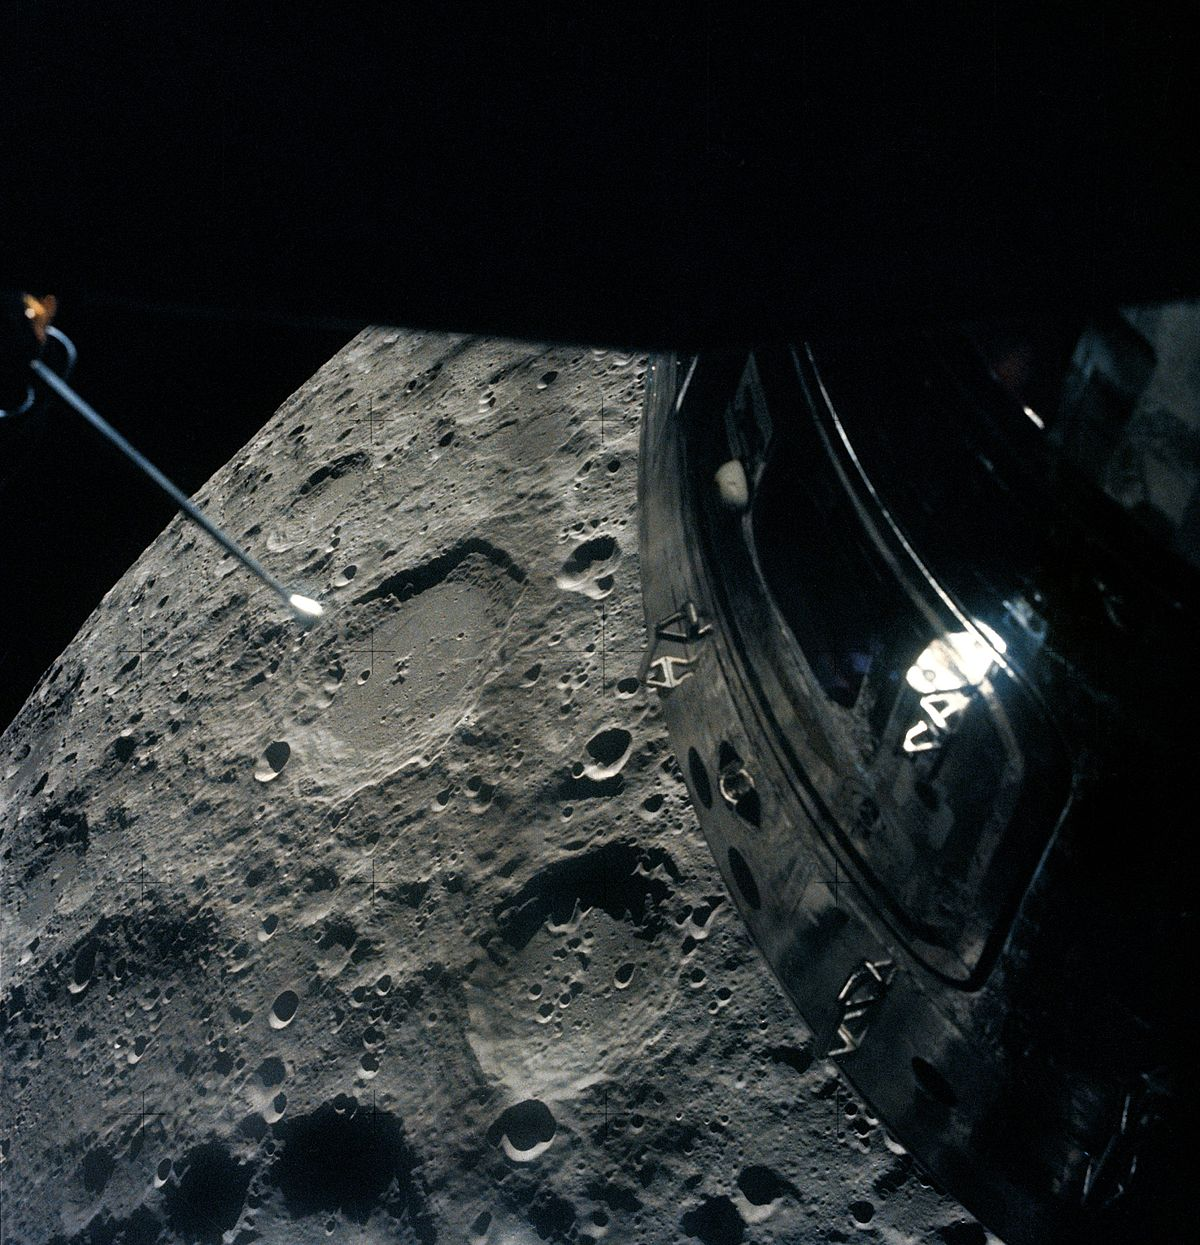 apollo 13 around moon - photo #8